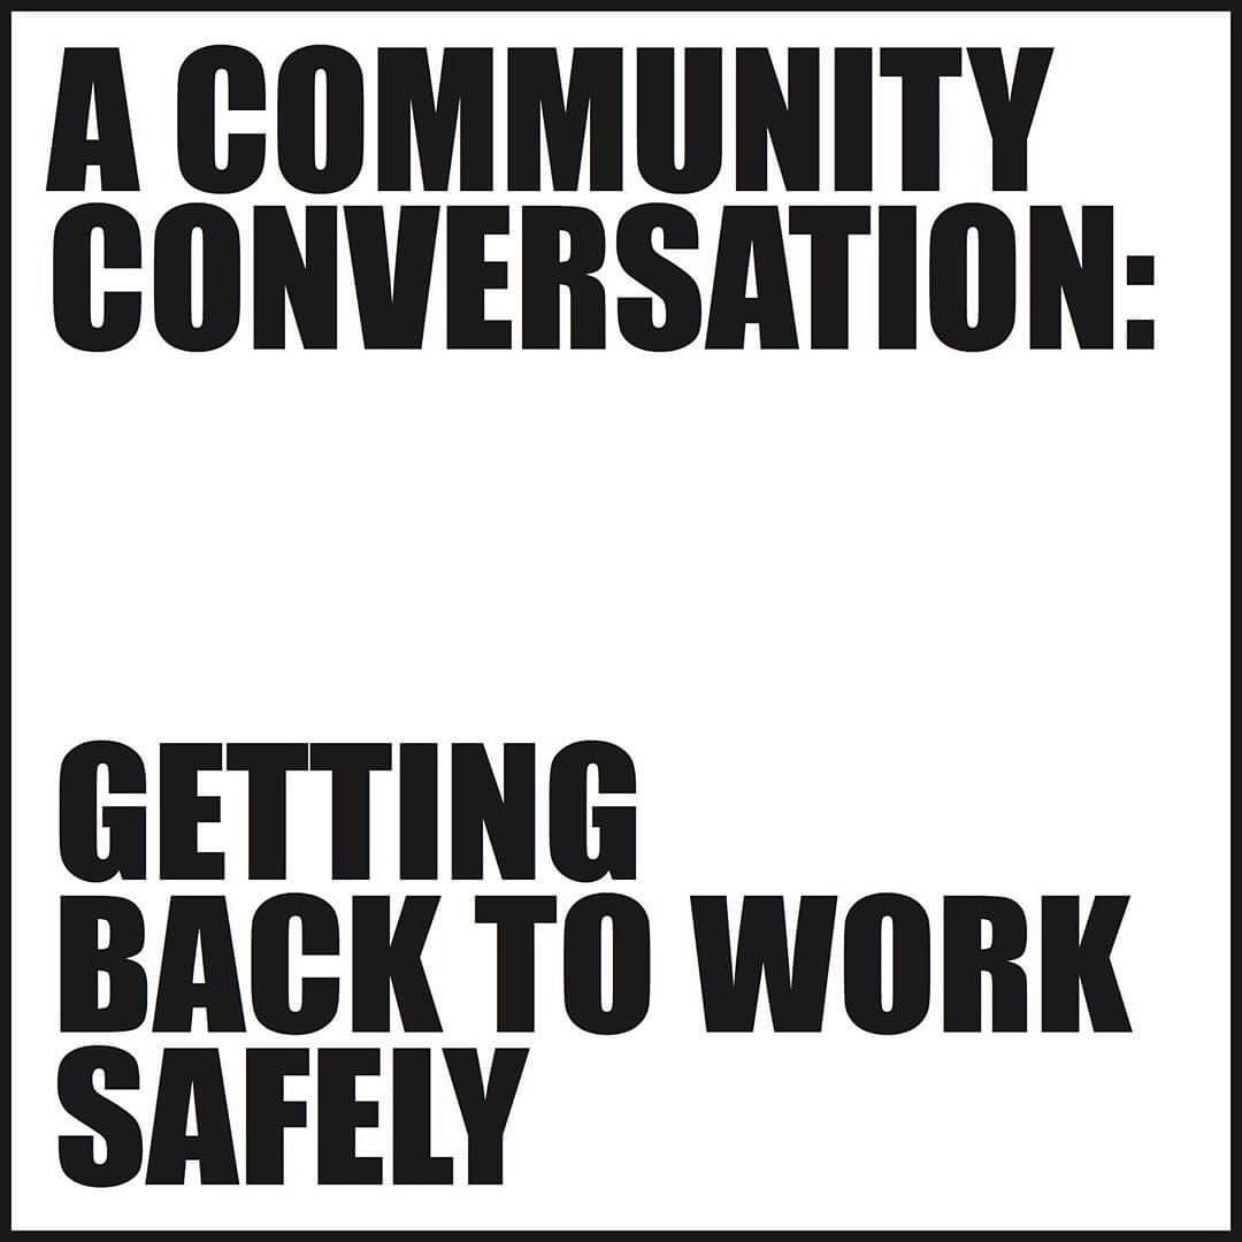 A COMMUNITY CONVERSATION: GETTING BACK TO WORK SAFELY